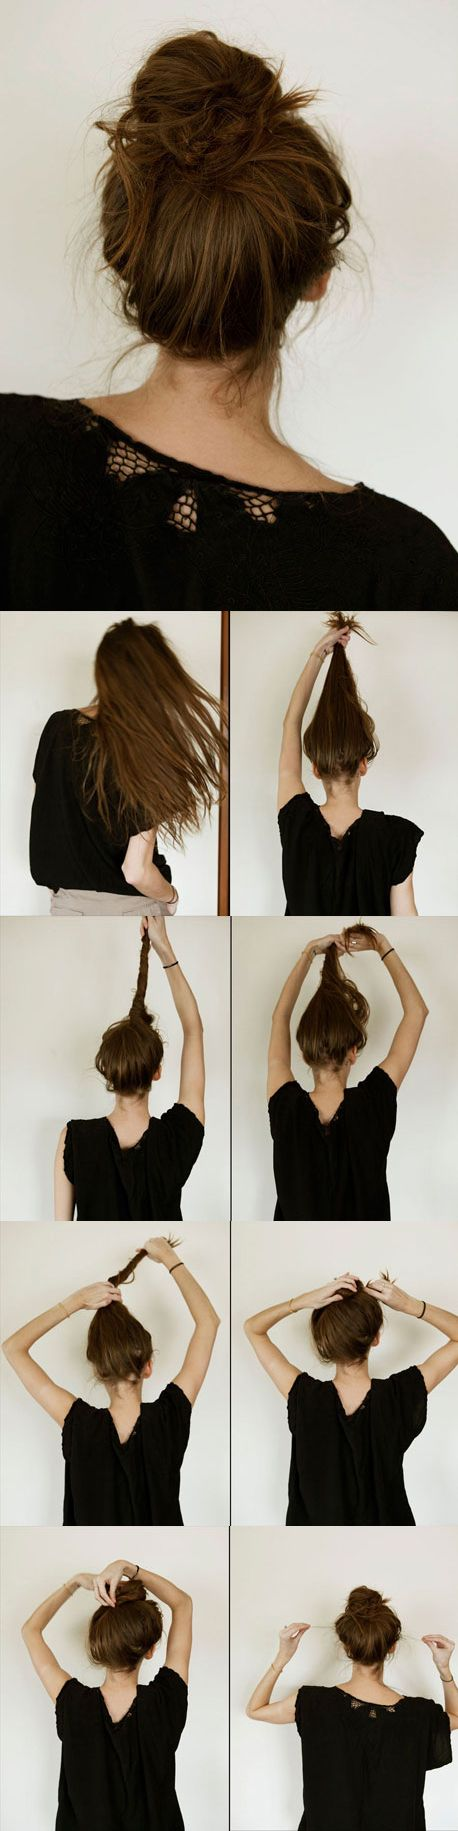 Super Easy Knotted Bun Updo And Simple Bun Hairstyle Tutorials Fashion Diva Design Bun Hairstyles For Long Hair Cute Everyday Hairstyles Hair Styles